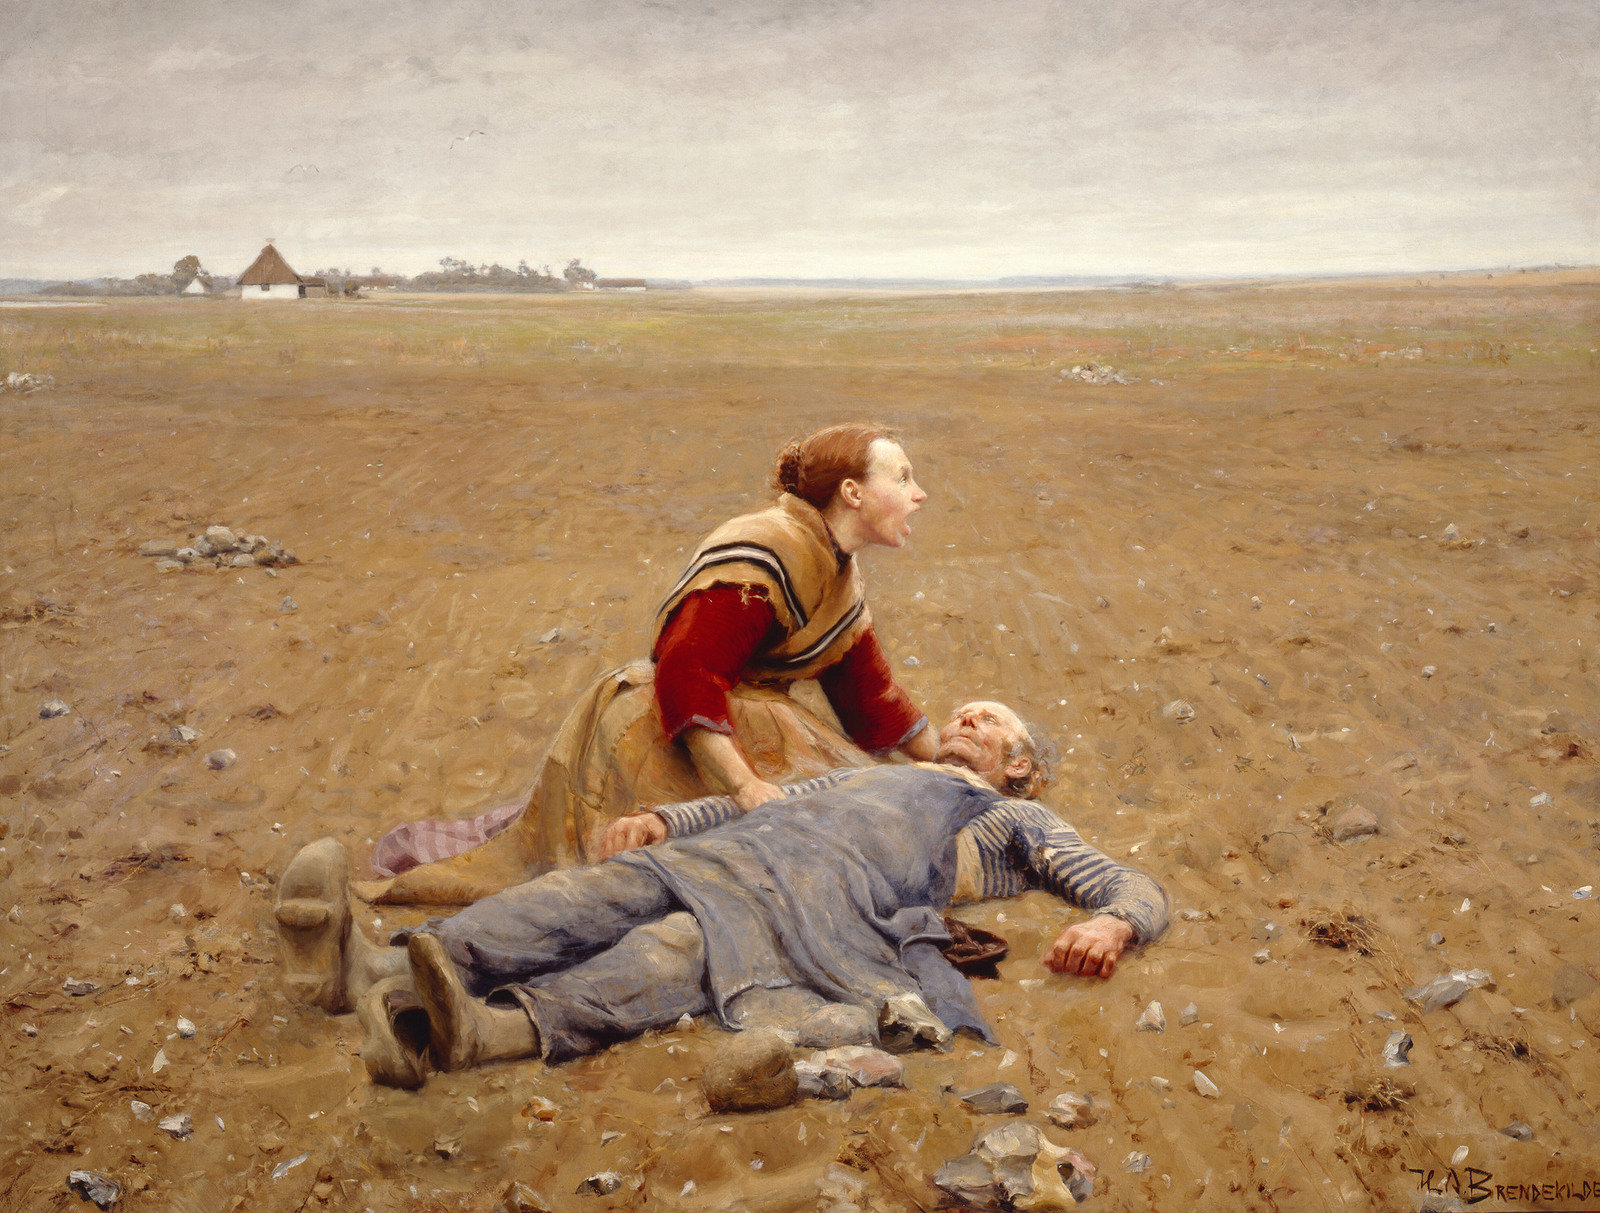 Worn Out, 1889, Hans Andersen Brendekilde, BRANDTS, Public Domain Mark